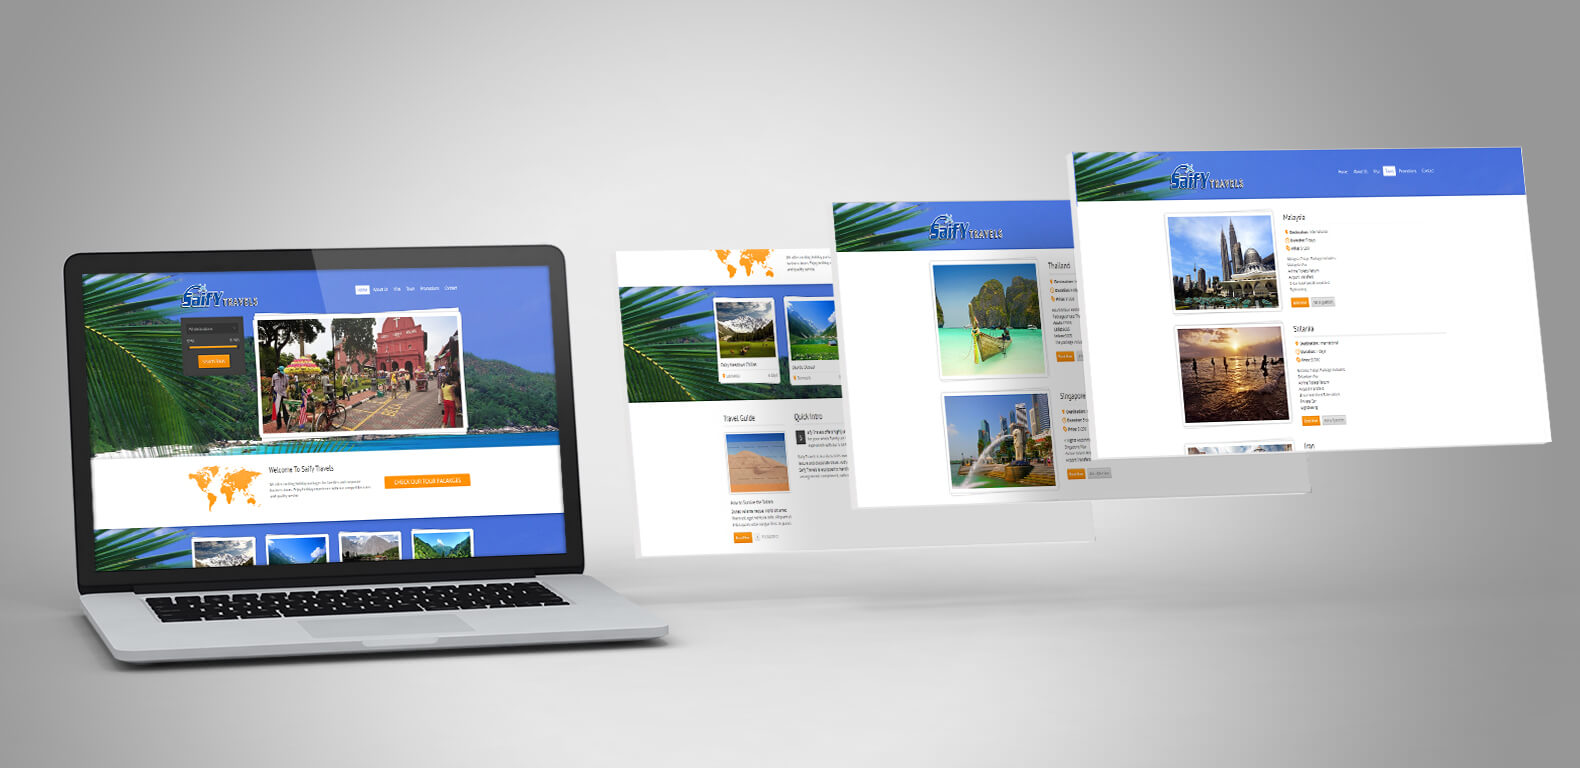 Website-Design-Development-1580x768-Saify-Travels.